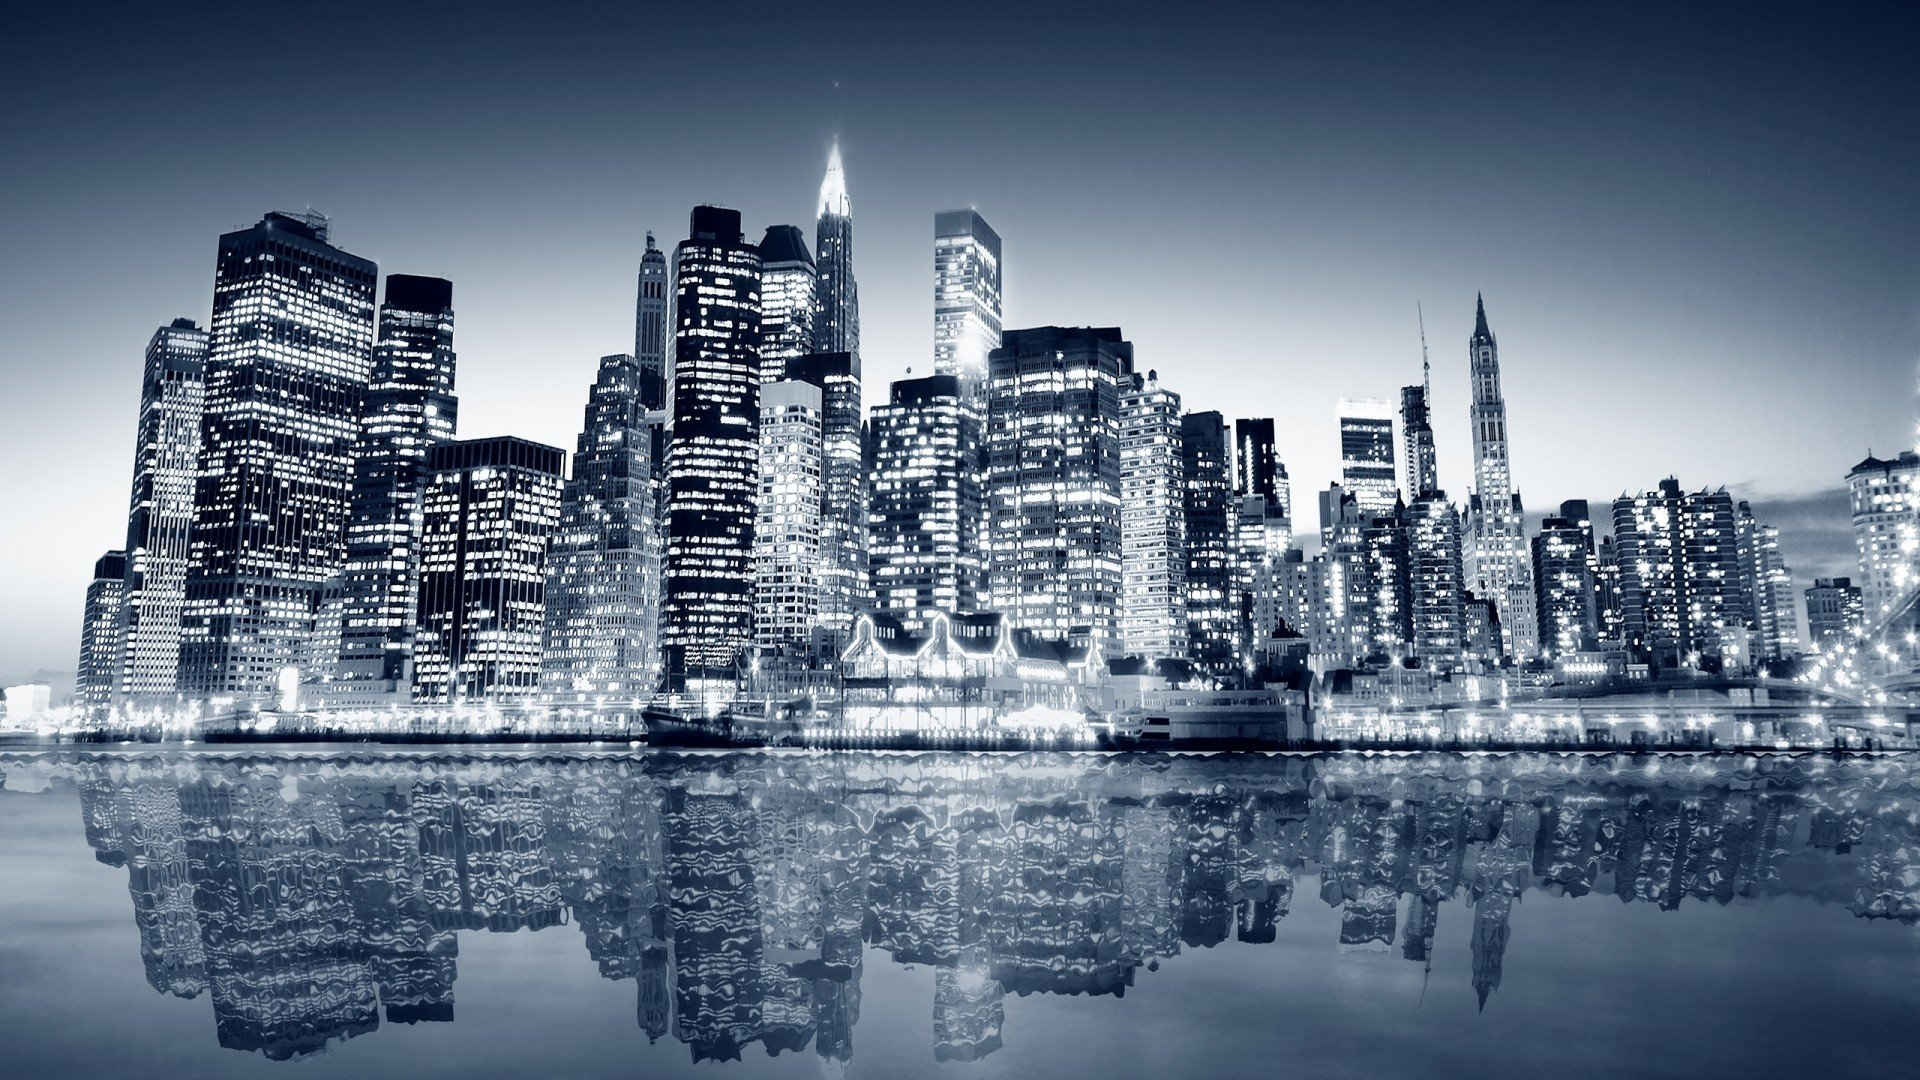 Cool Pictures New York City HD Wallpaper of City   hdwallpaper2013com 1920x1080